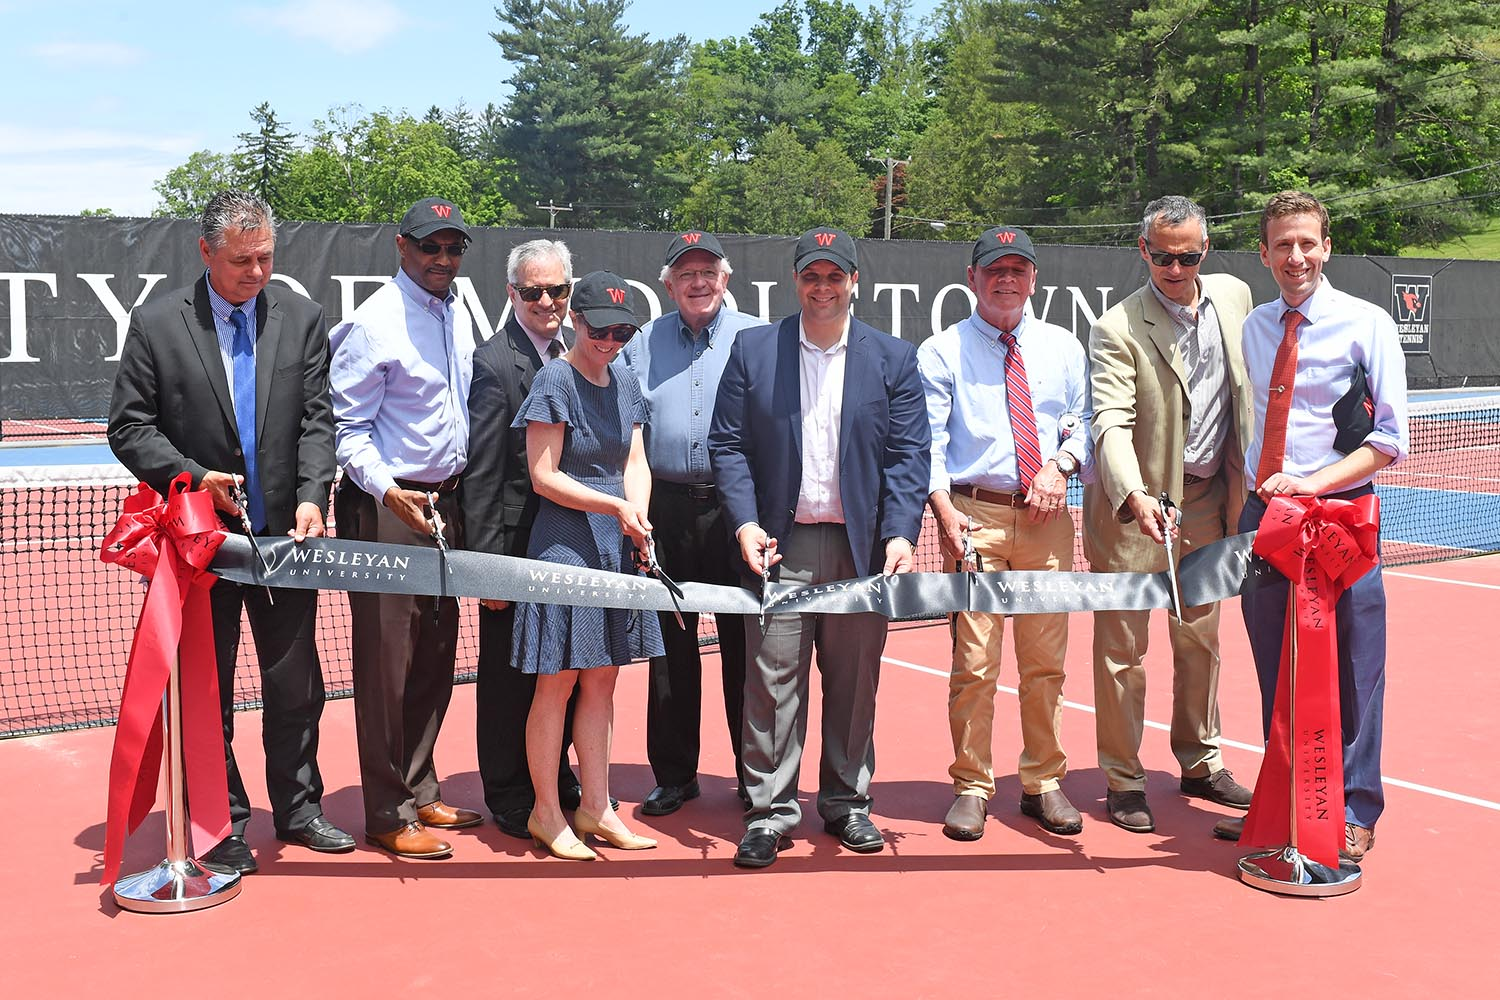 In 2017, Wesleyan and the City of Middletown partnered together on a project to rehabilitate and upgrade the Vine Street Tennis Courts. And on June 8, the courts were officially re-dedicated during a ribbon-cutting ceremony. Participants included William Russo, director of Middletown Public Works; Lorenzo Marshall, Middlesex Chamber of Commerce; Seb Giuliano, Common Council; Cathy Lechowicz, director of recreation and community services for the City of Middletown; Gerald Daley, Common Council; Daniel Drew, Mayor; Eugene Nocera, Common Council' Wesleyan President Michael Roth and State Representative Matt Lesser '10.